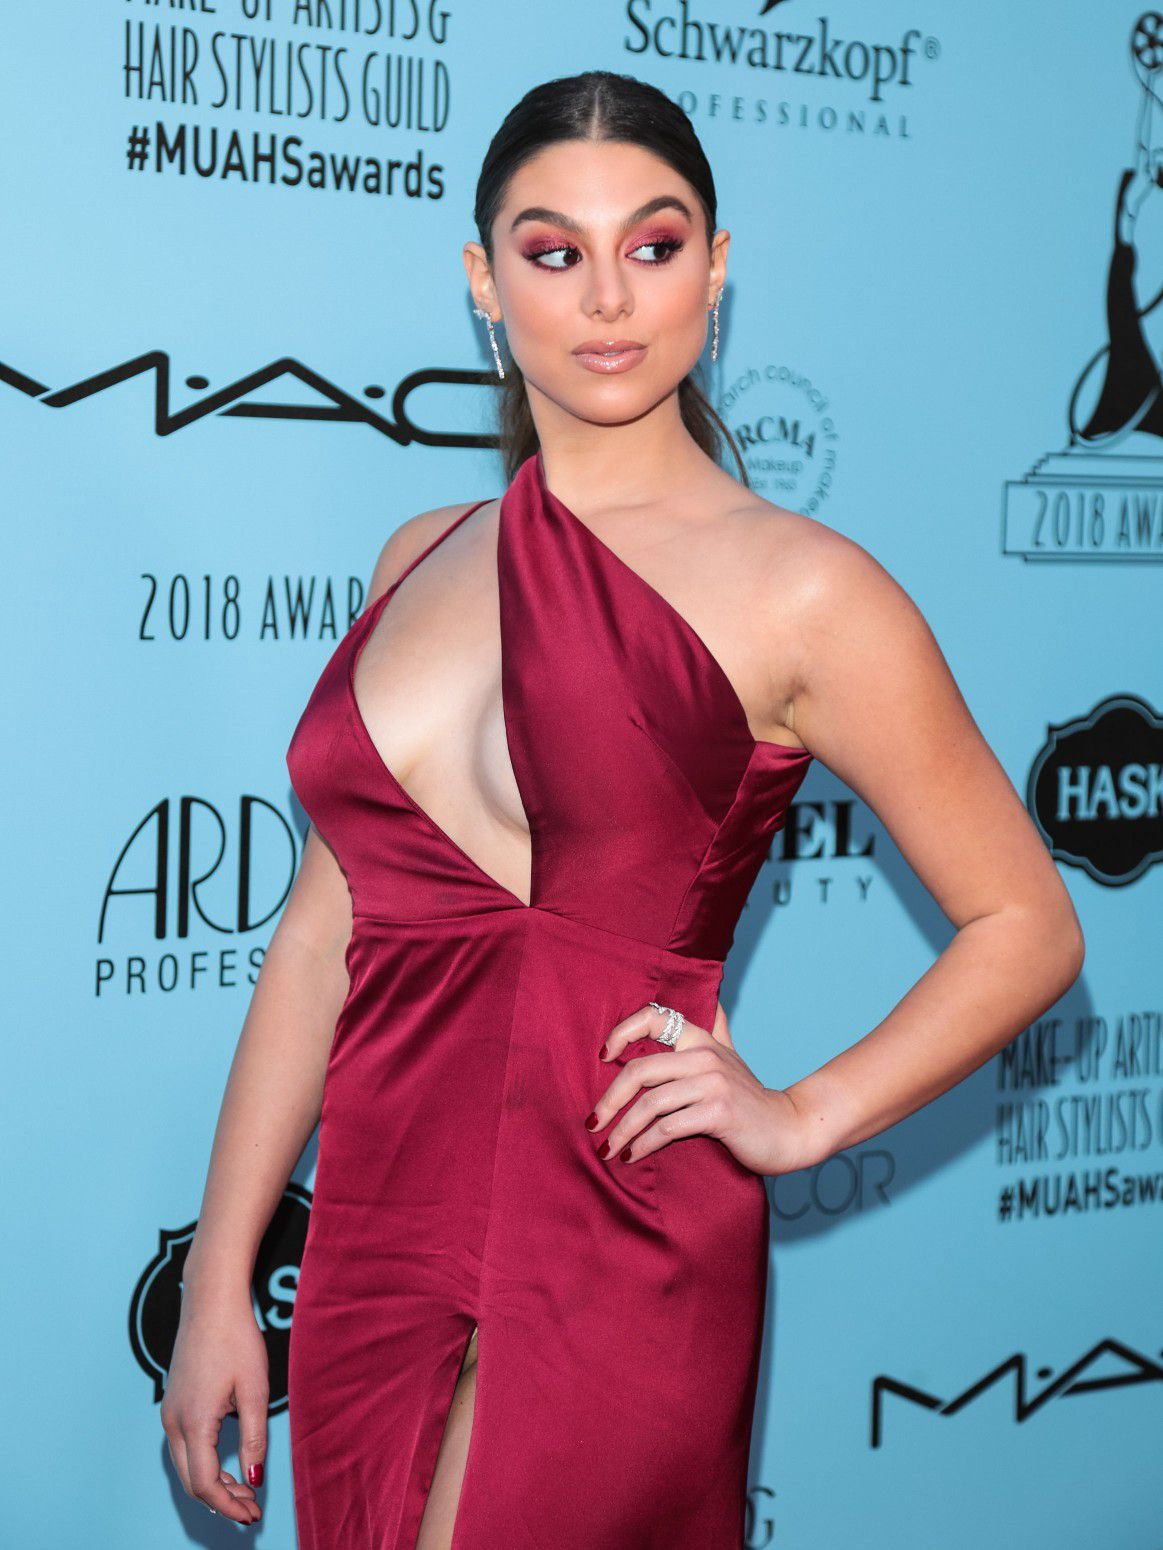 kira-kosarin-panty-upskirt-at-2018-make-up-artists-and-hair-stylists-guild-awards-in-la-3445